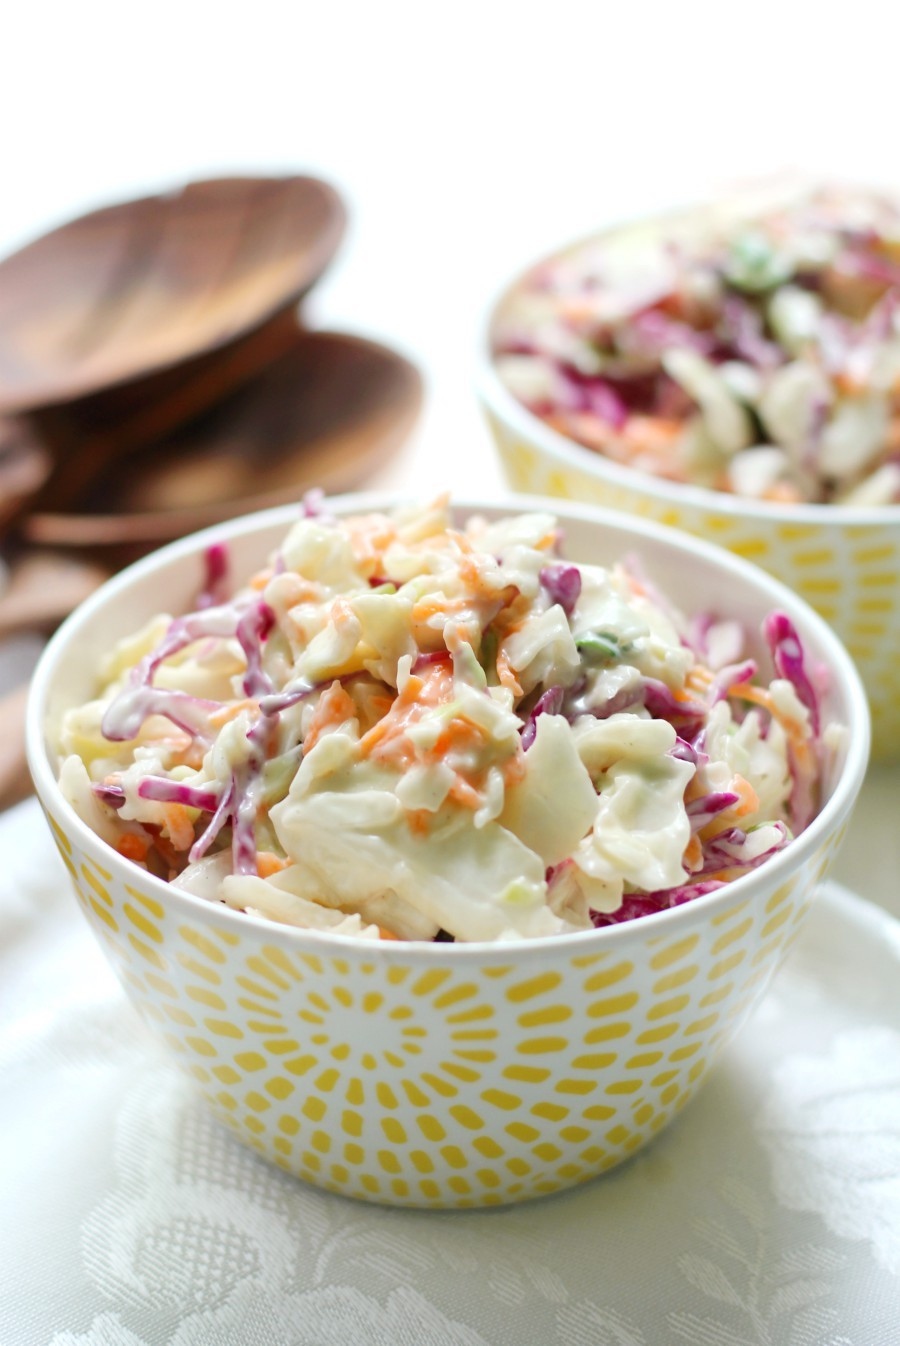 coleslaw-wooden-spoon-two-bowls